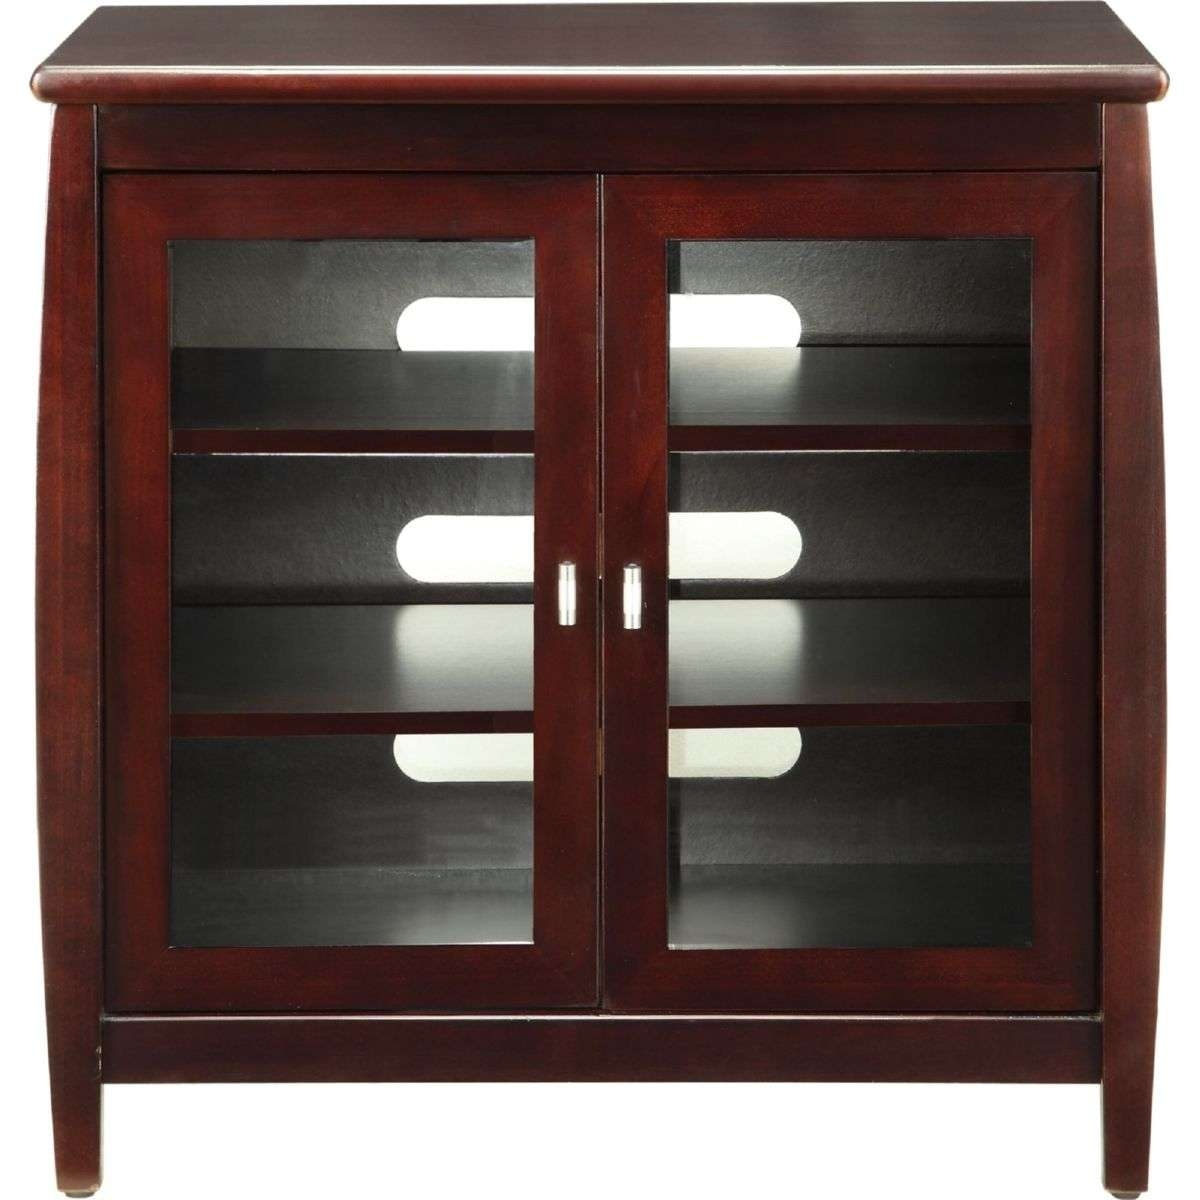 Tv Television Stands 31 To 40 Inches Wide At Dynamic Home Decor With Tv Stands 40 Inches Wide (View 5 of 15)